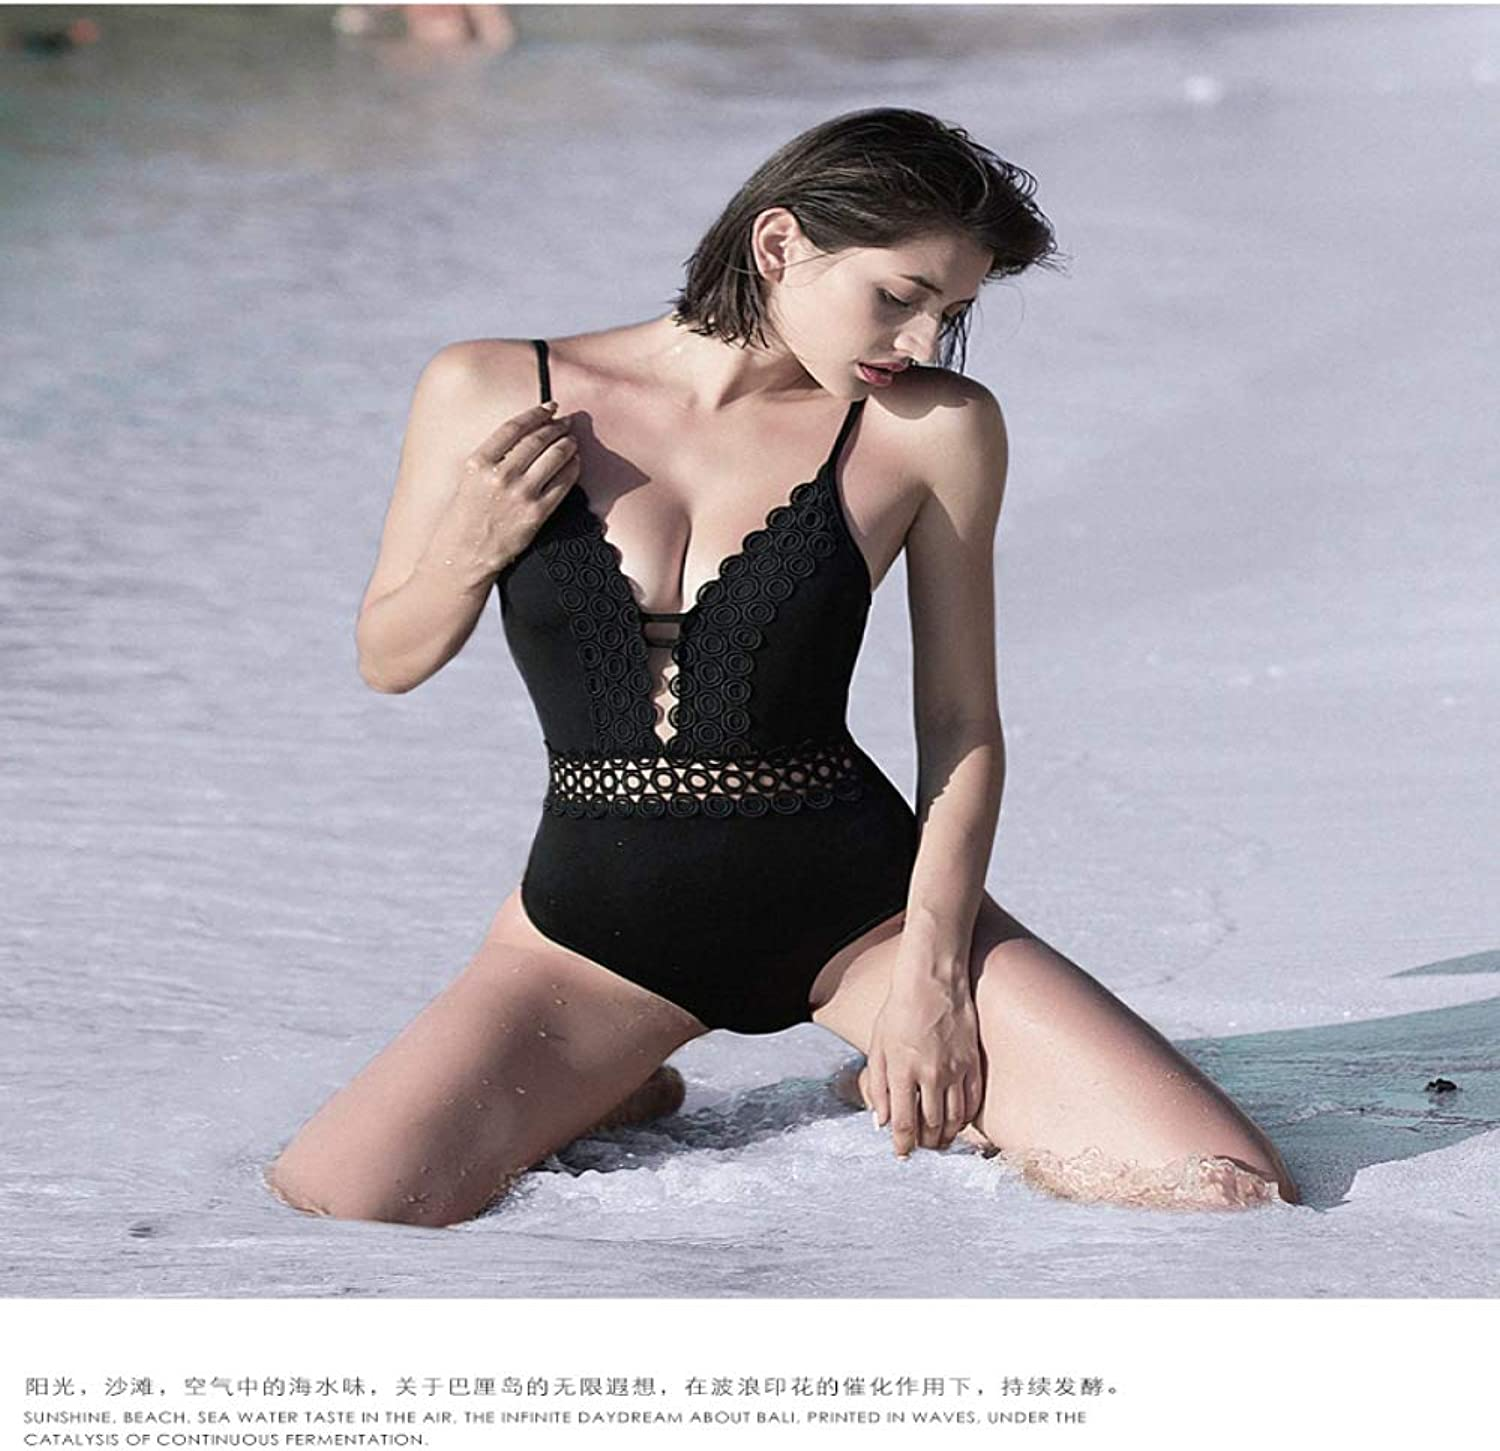 LXKDYYY Slim Small Chest Gathered Covered Belly Swimsuit Conservative Cover Meat Fashion hot Spring Bathing Suit Female Siamese Black